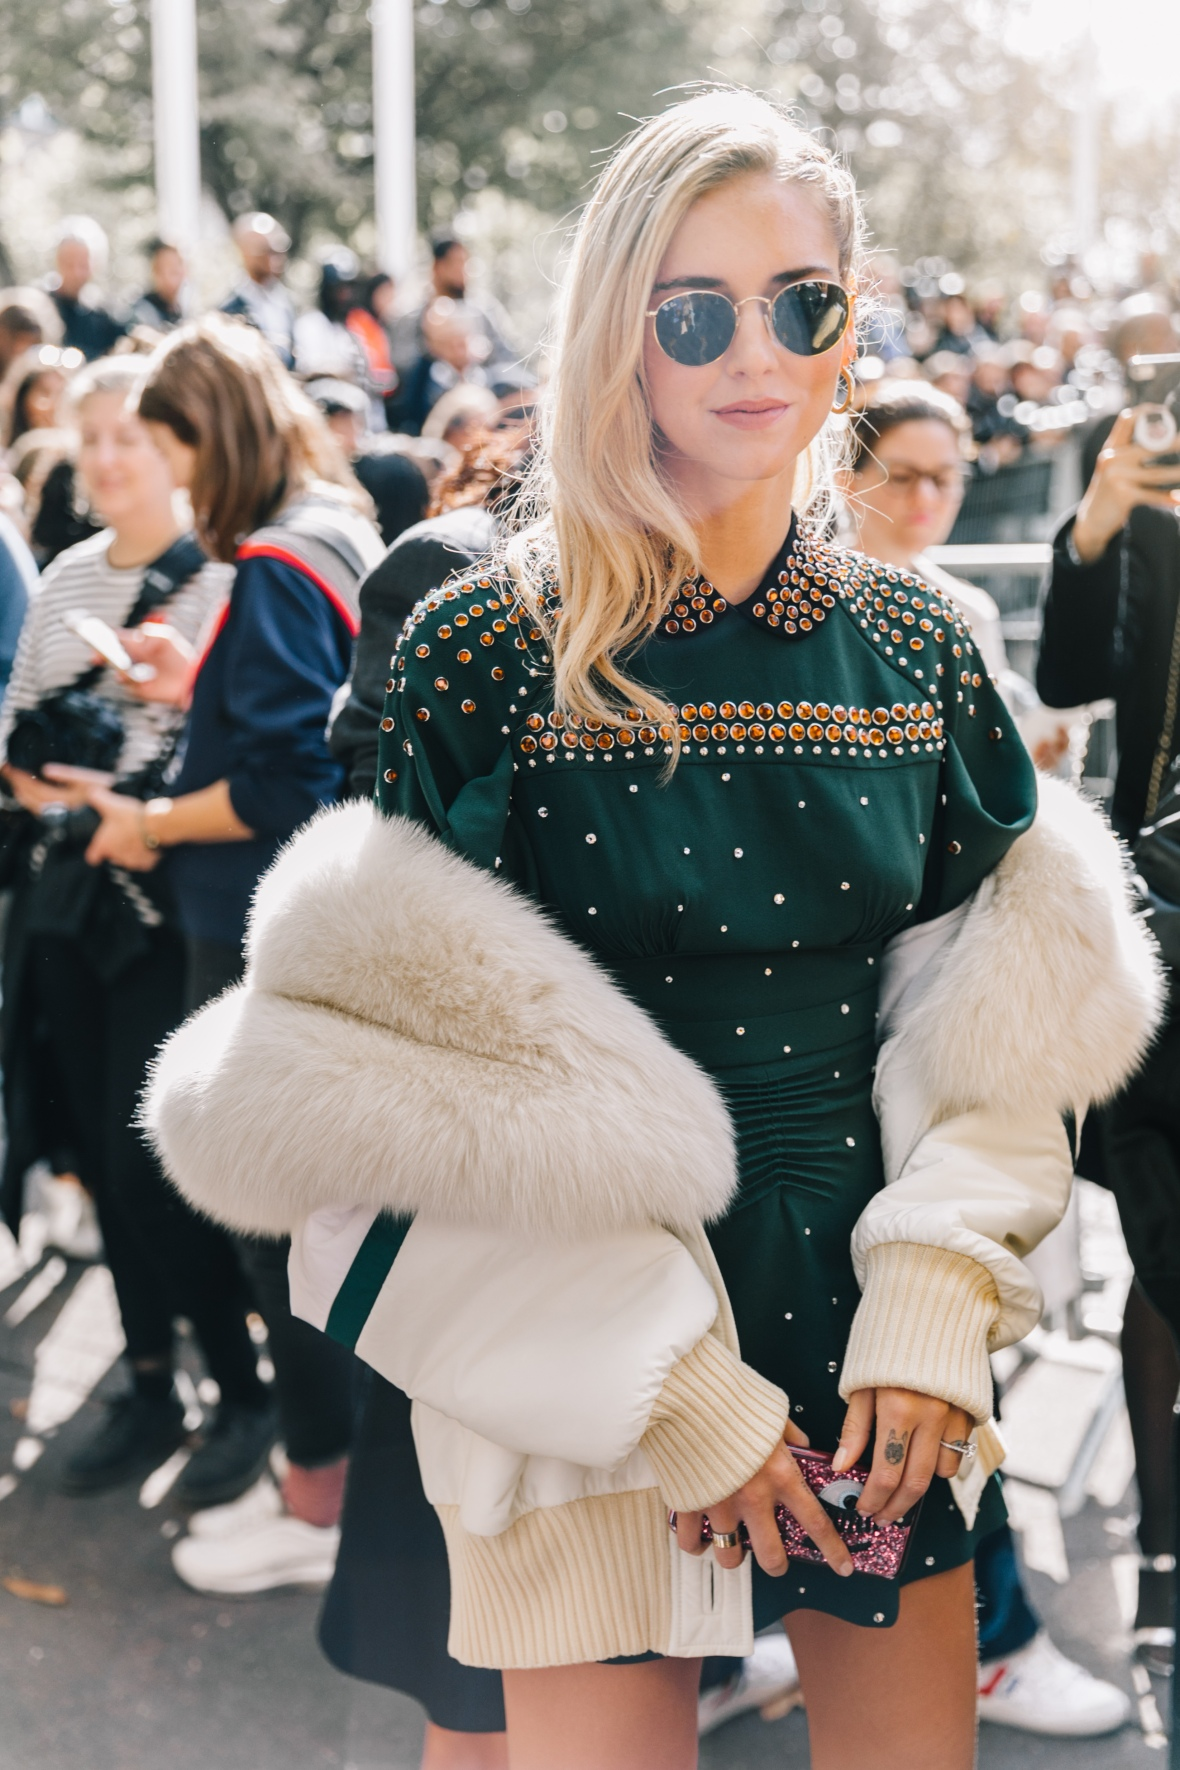 PFW-SS18-Paris_Fashion_Week-Street_Style-Vogue-Collage_Vintage-45-4